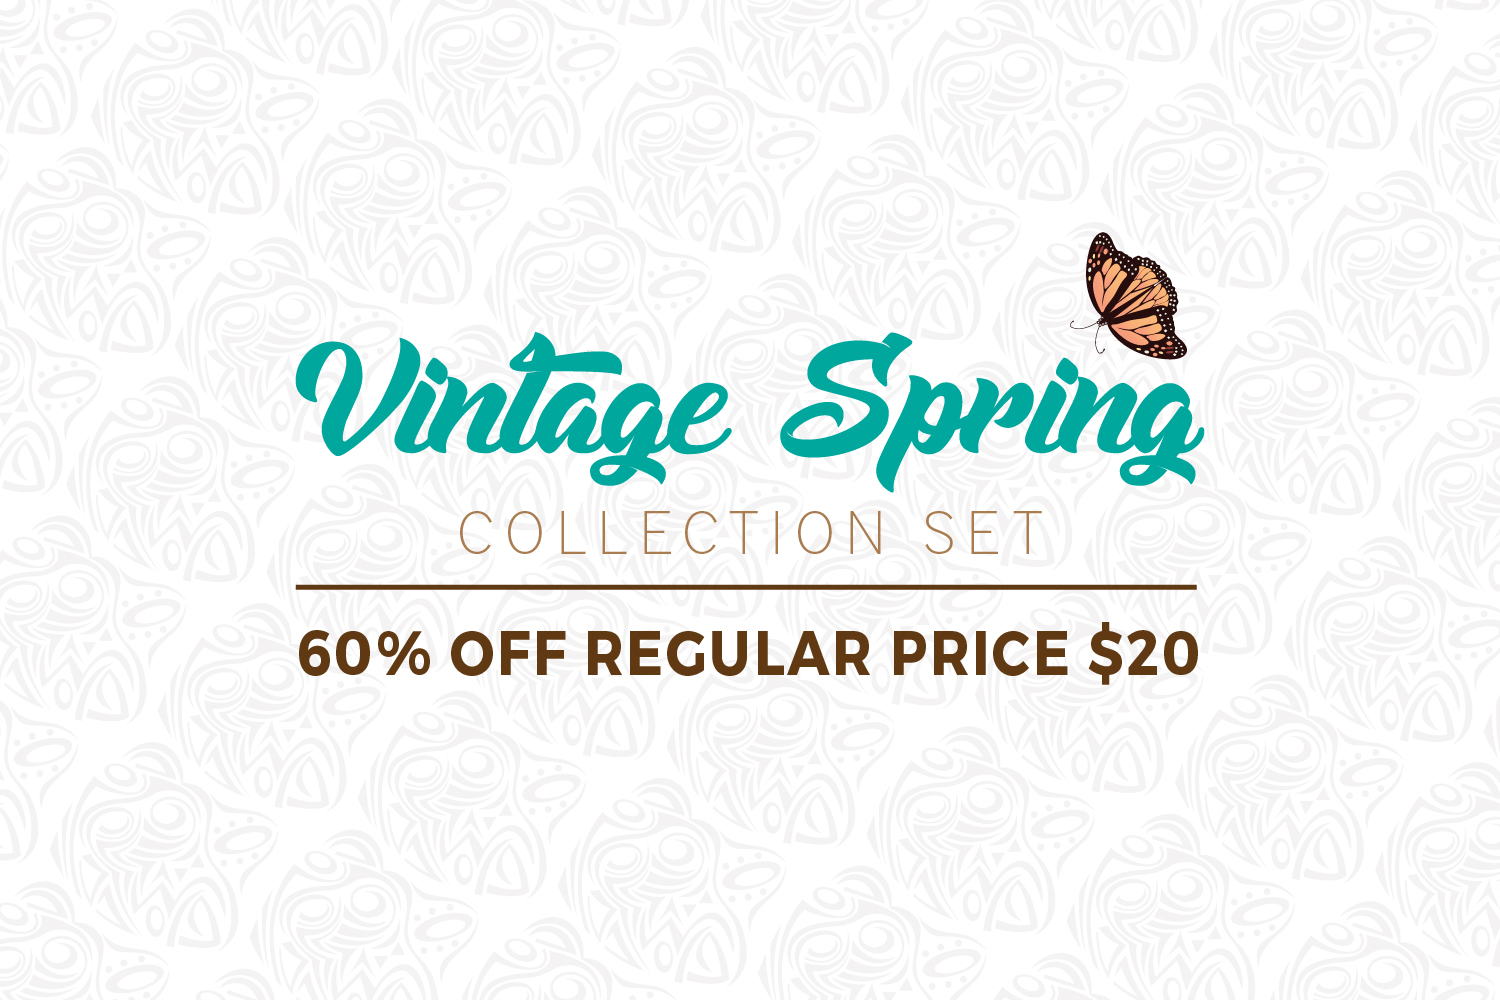 Vintage Spring Collection Set - 60% OFF regular price  example image 1